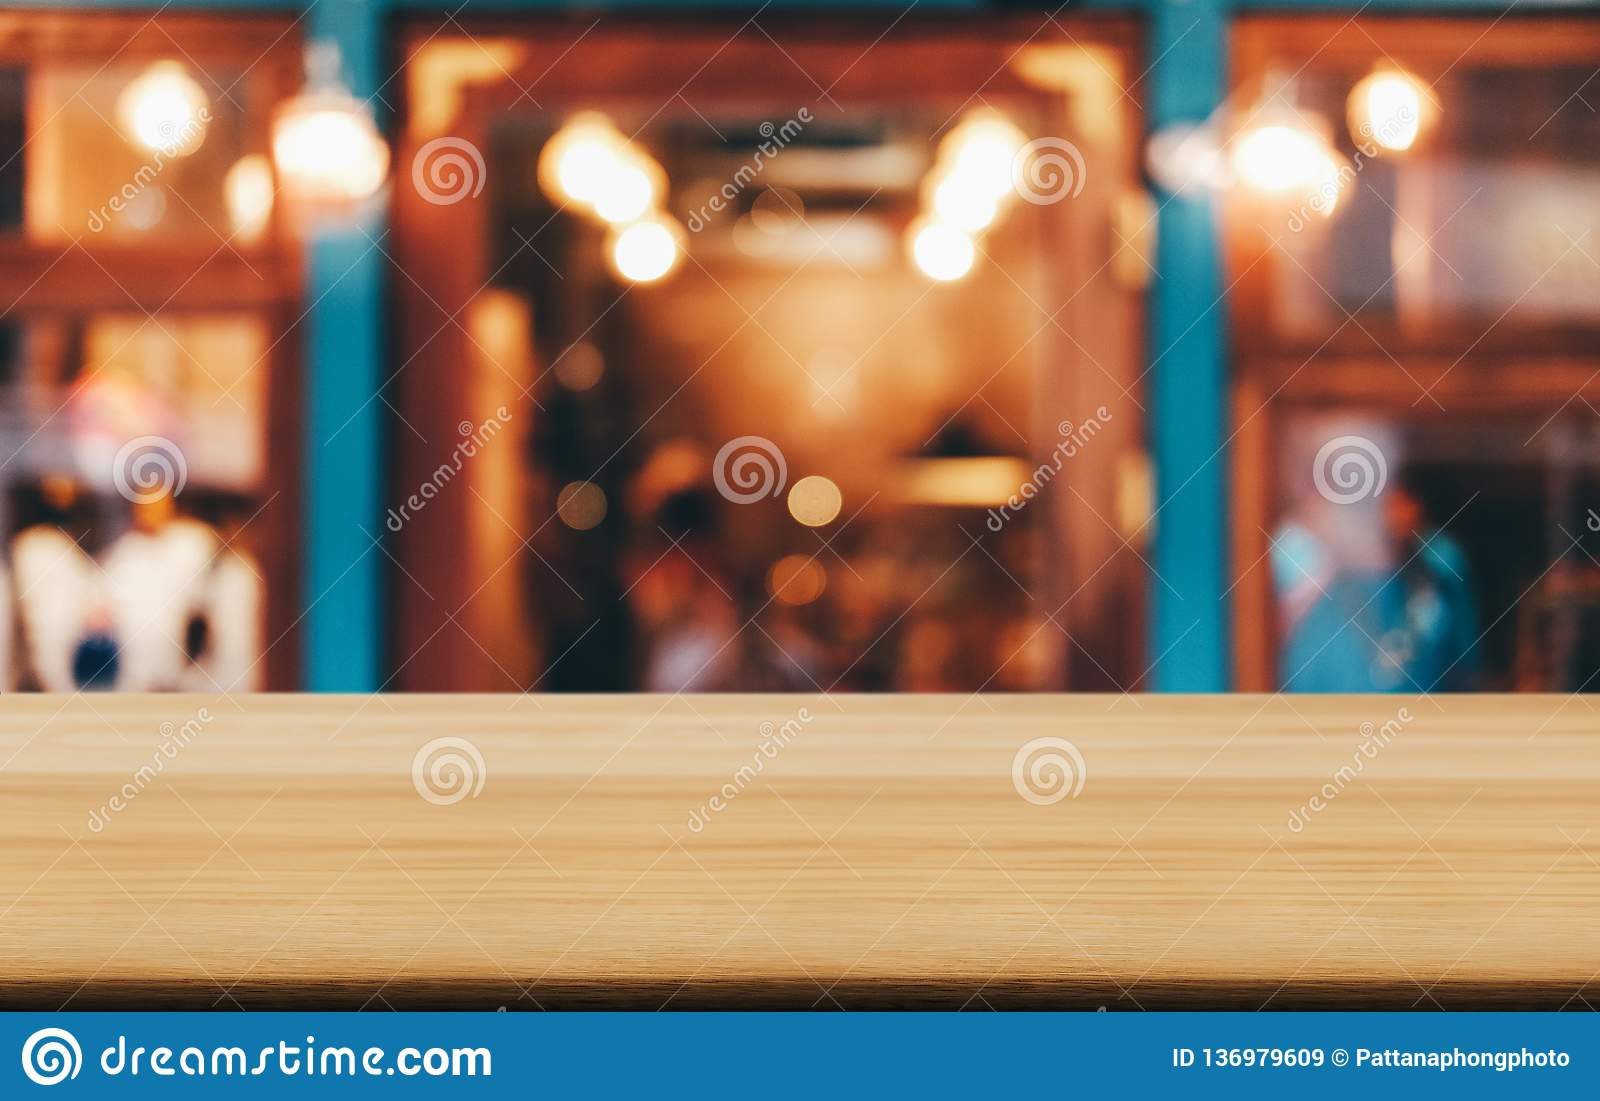 Selective Focus Empty wooden table in front of abstract blurred festive background with night market background bokeh for product